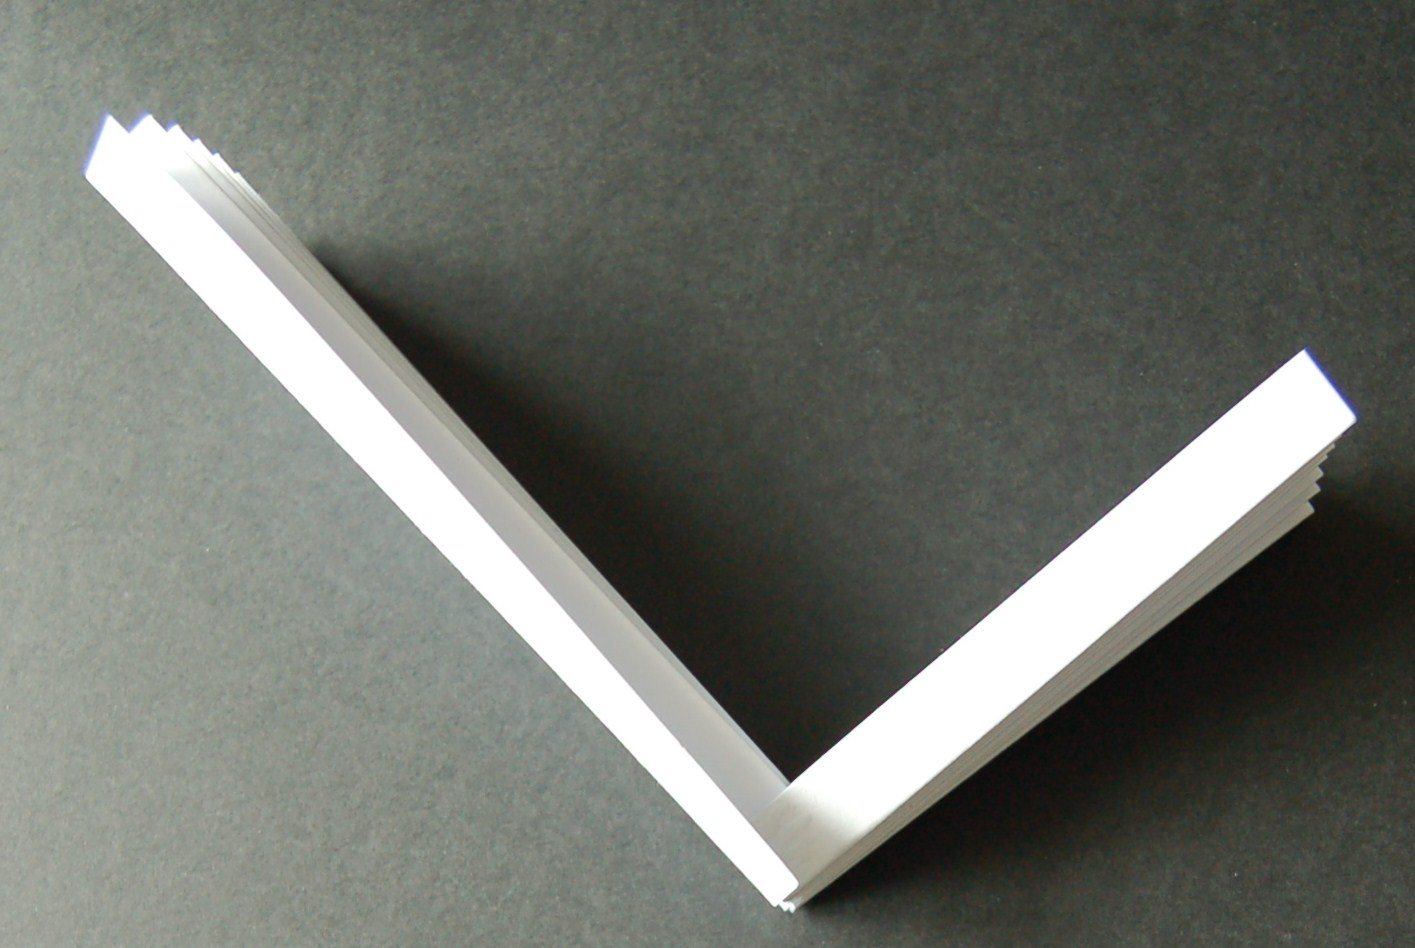 Real Life Example Right Angle : The gallery for gt examples of straight angles in real life